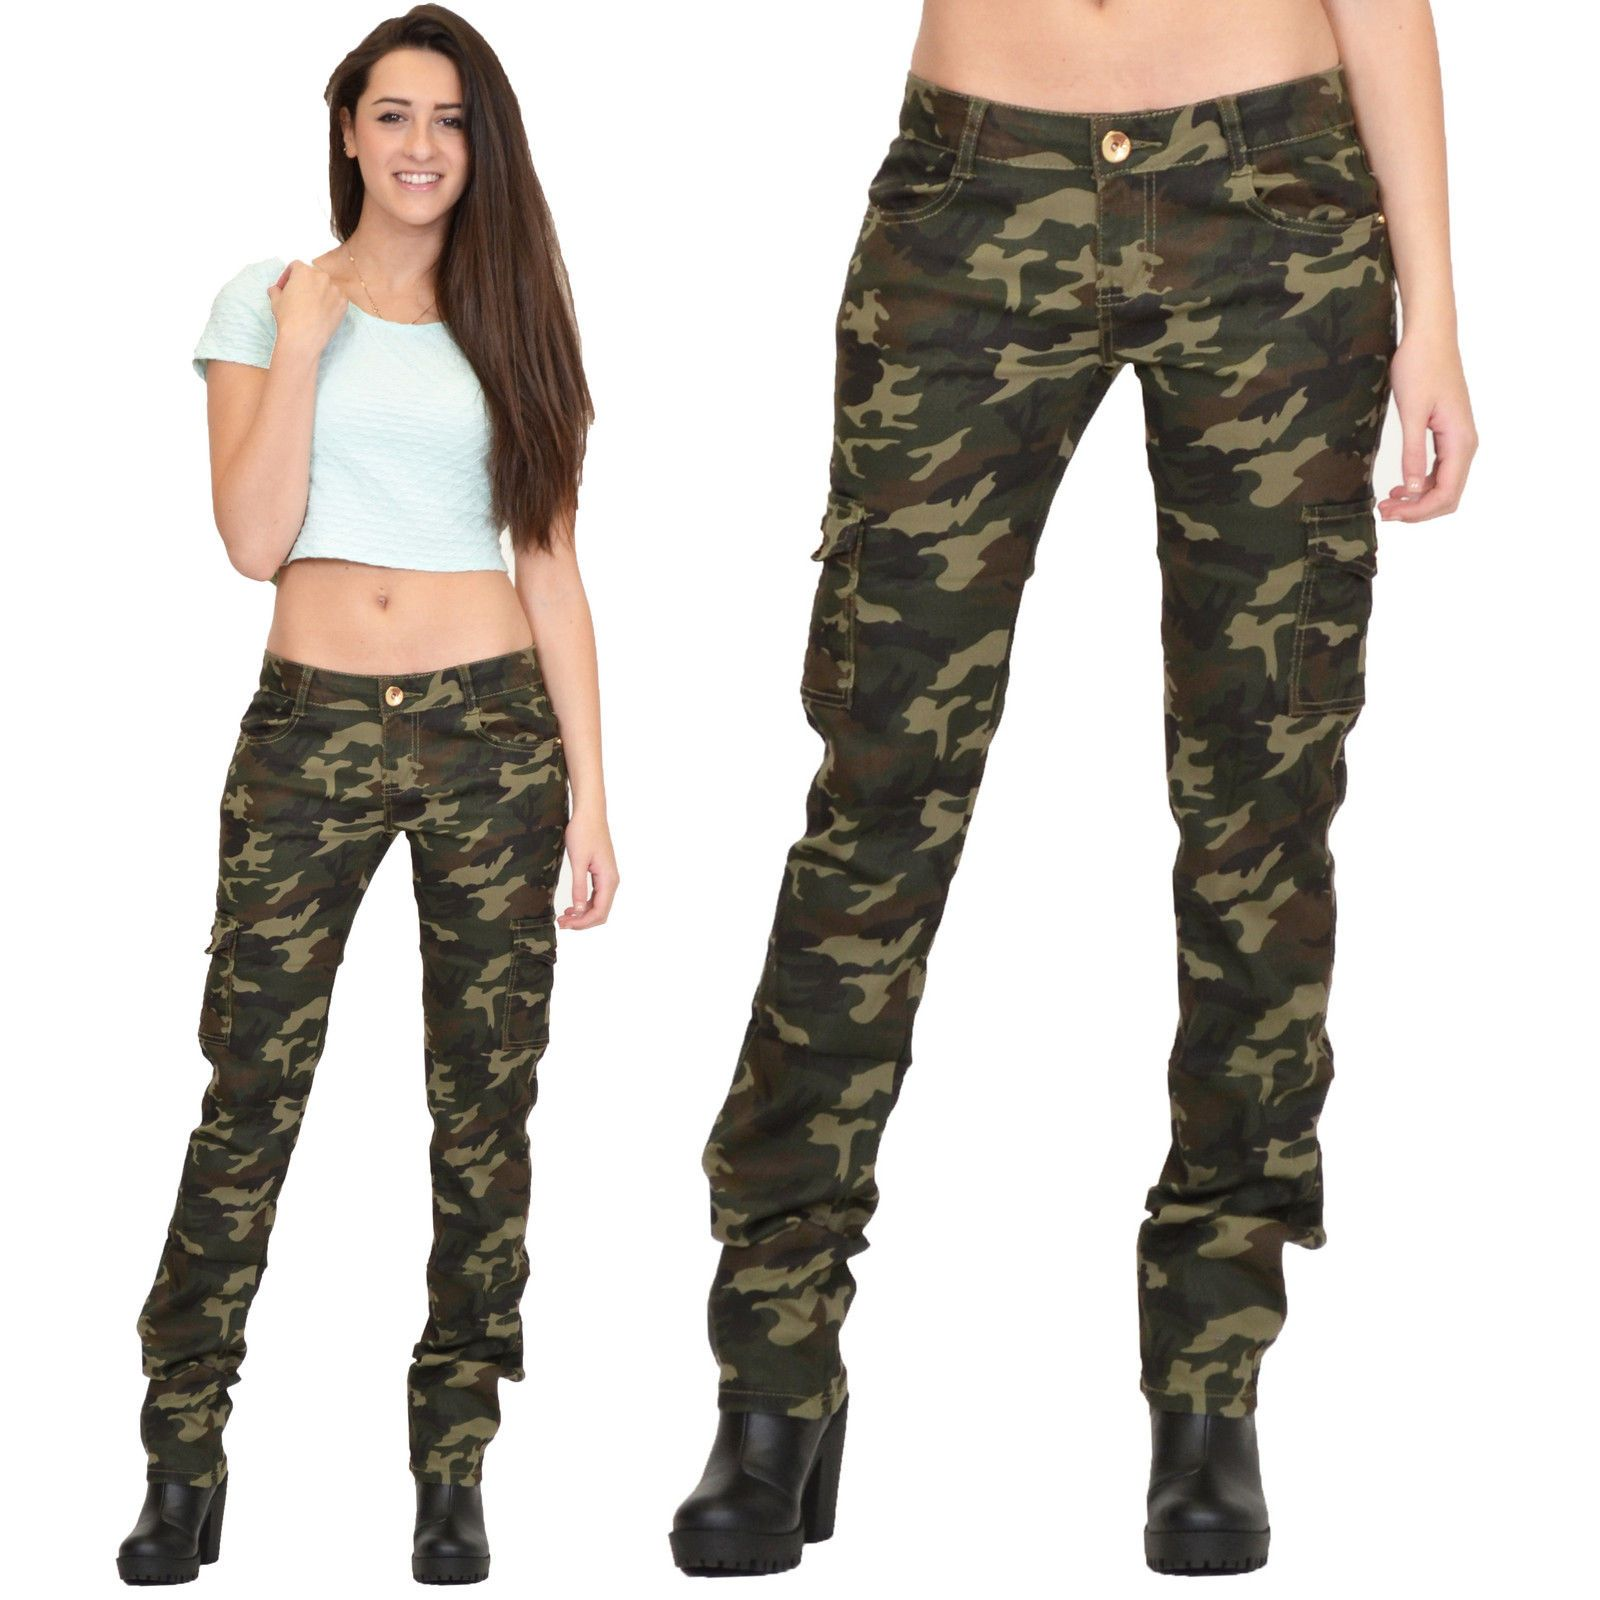 army women clothes - بحث Google | The Army | Pinterest | Lady ...